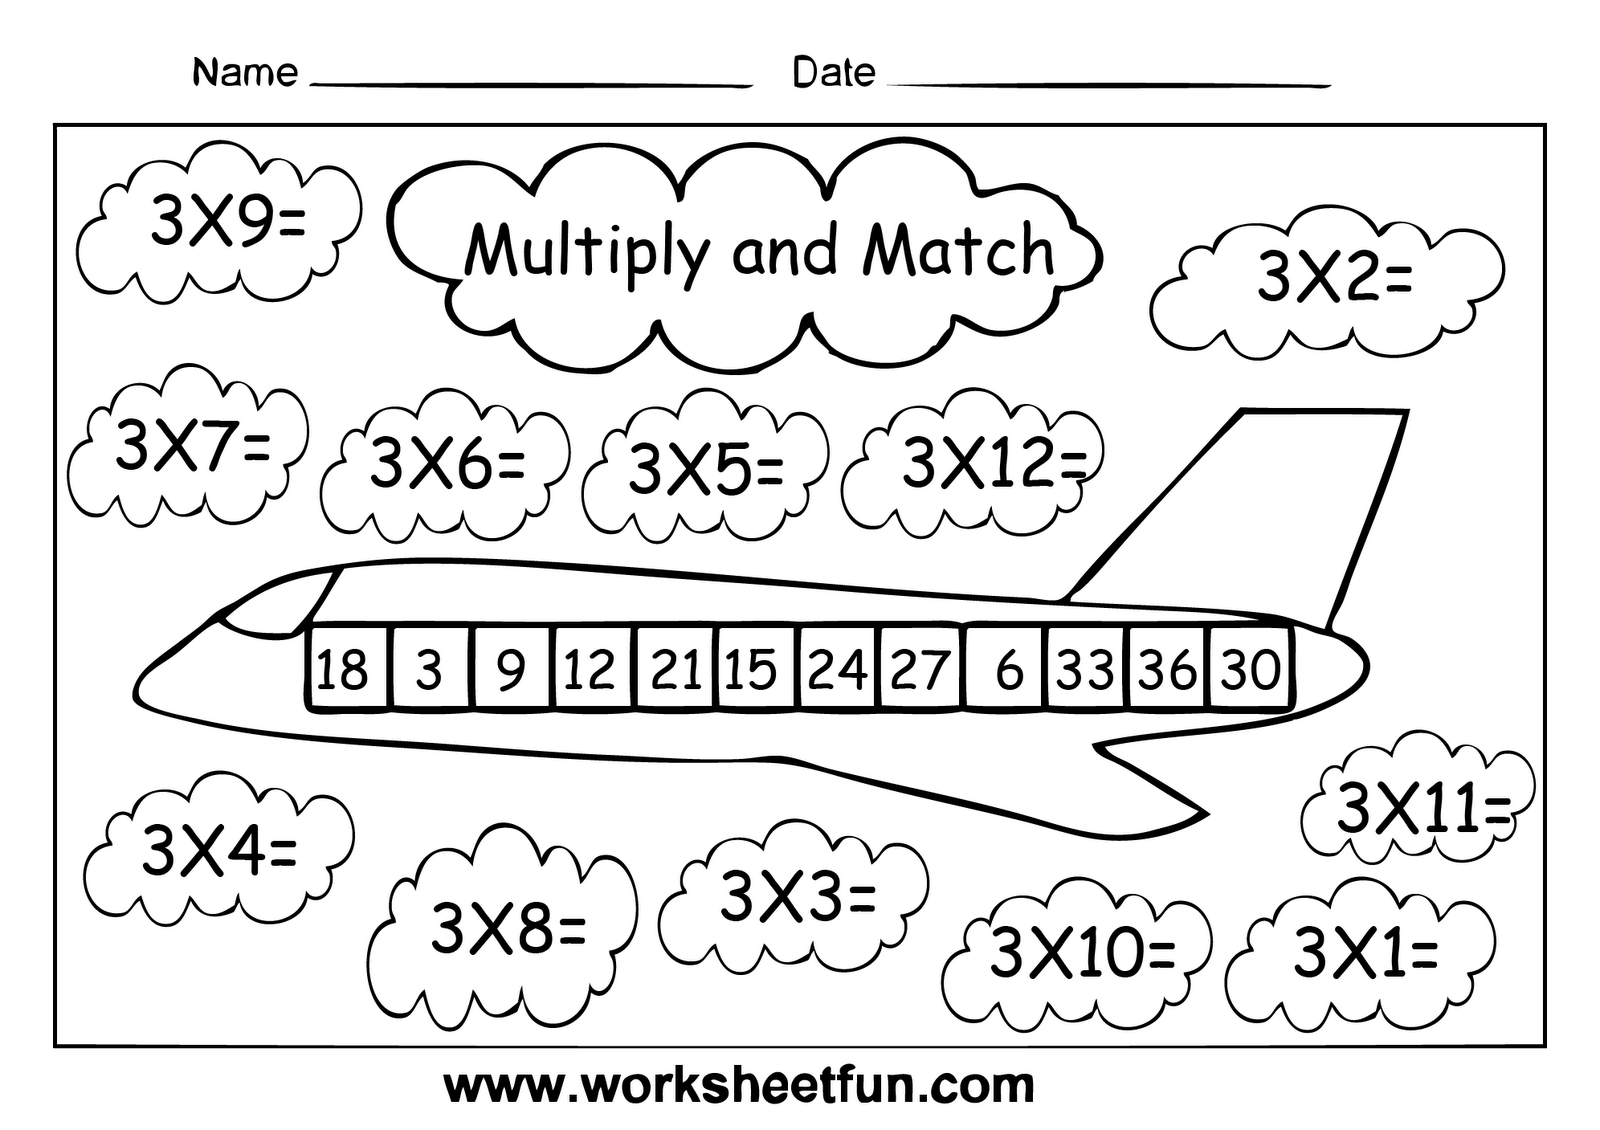 Fun Math Worksheets For Pretty Much Any Topic